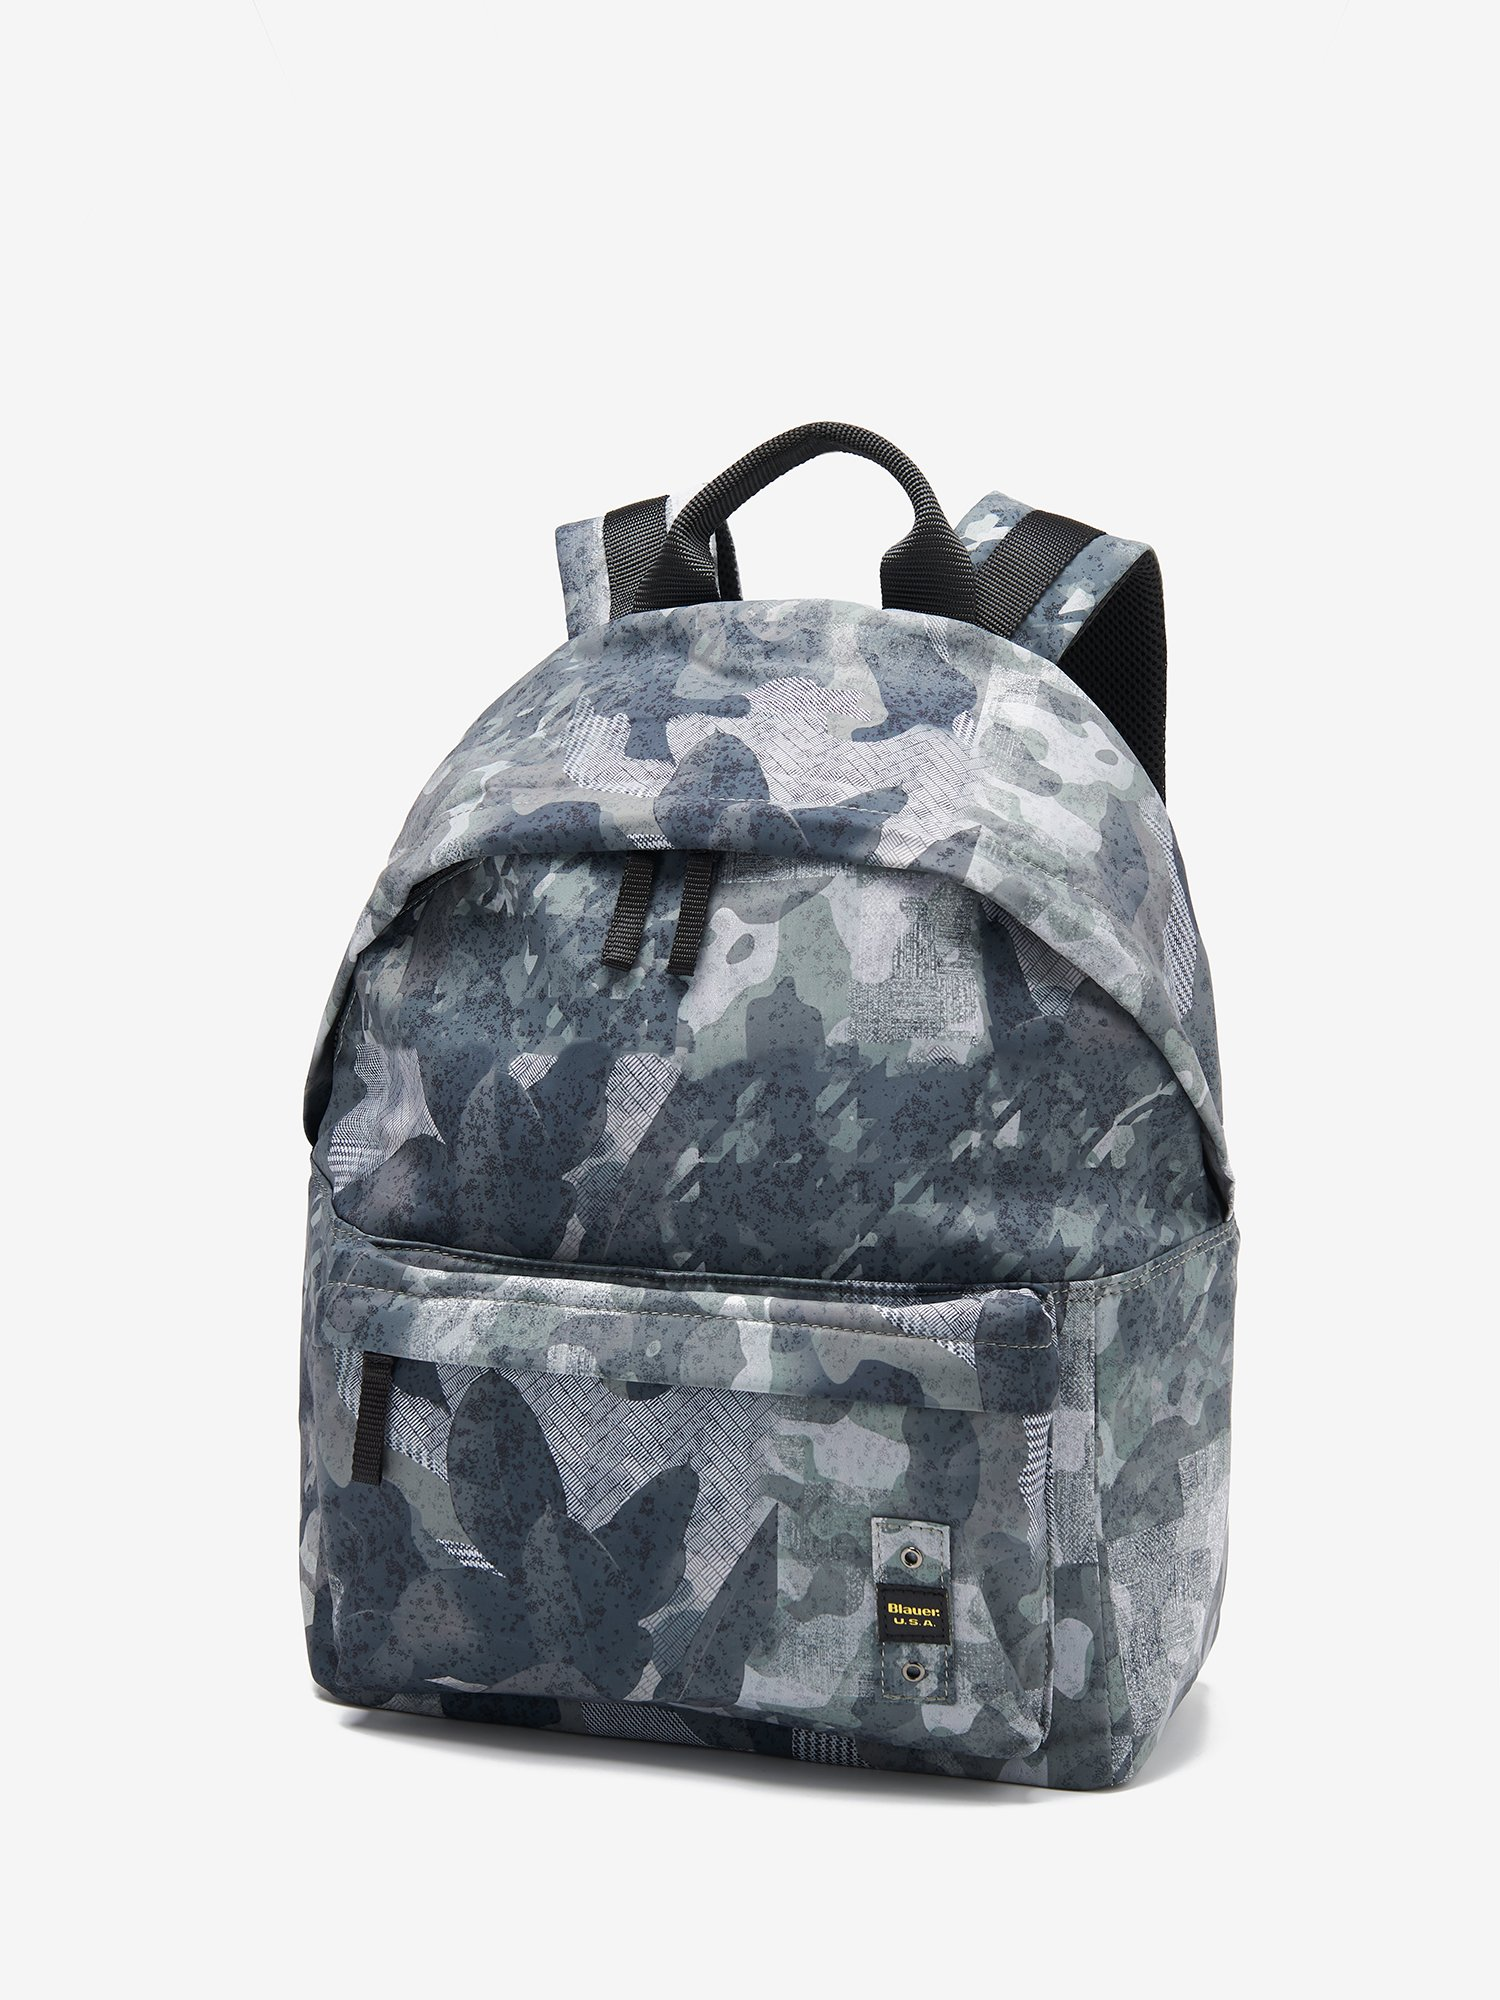 CAMOUFLAGE BACKPACK - Blauer